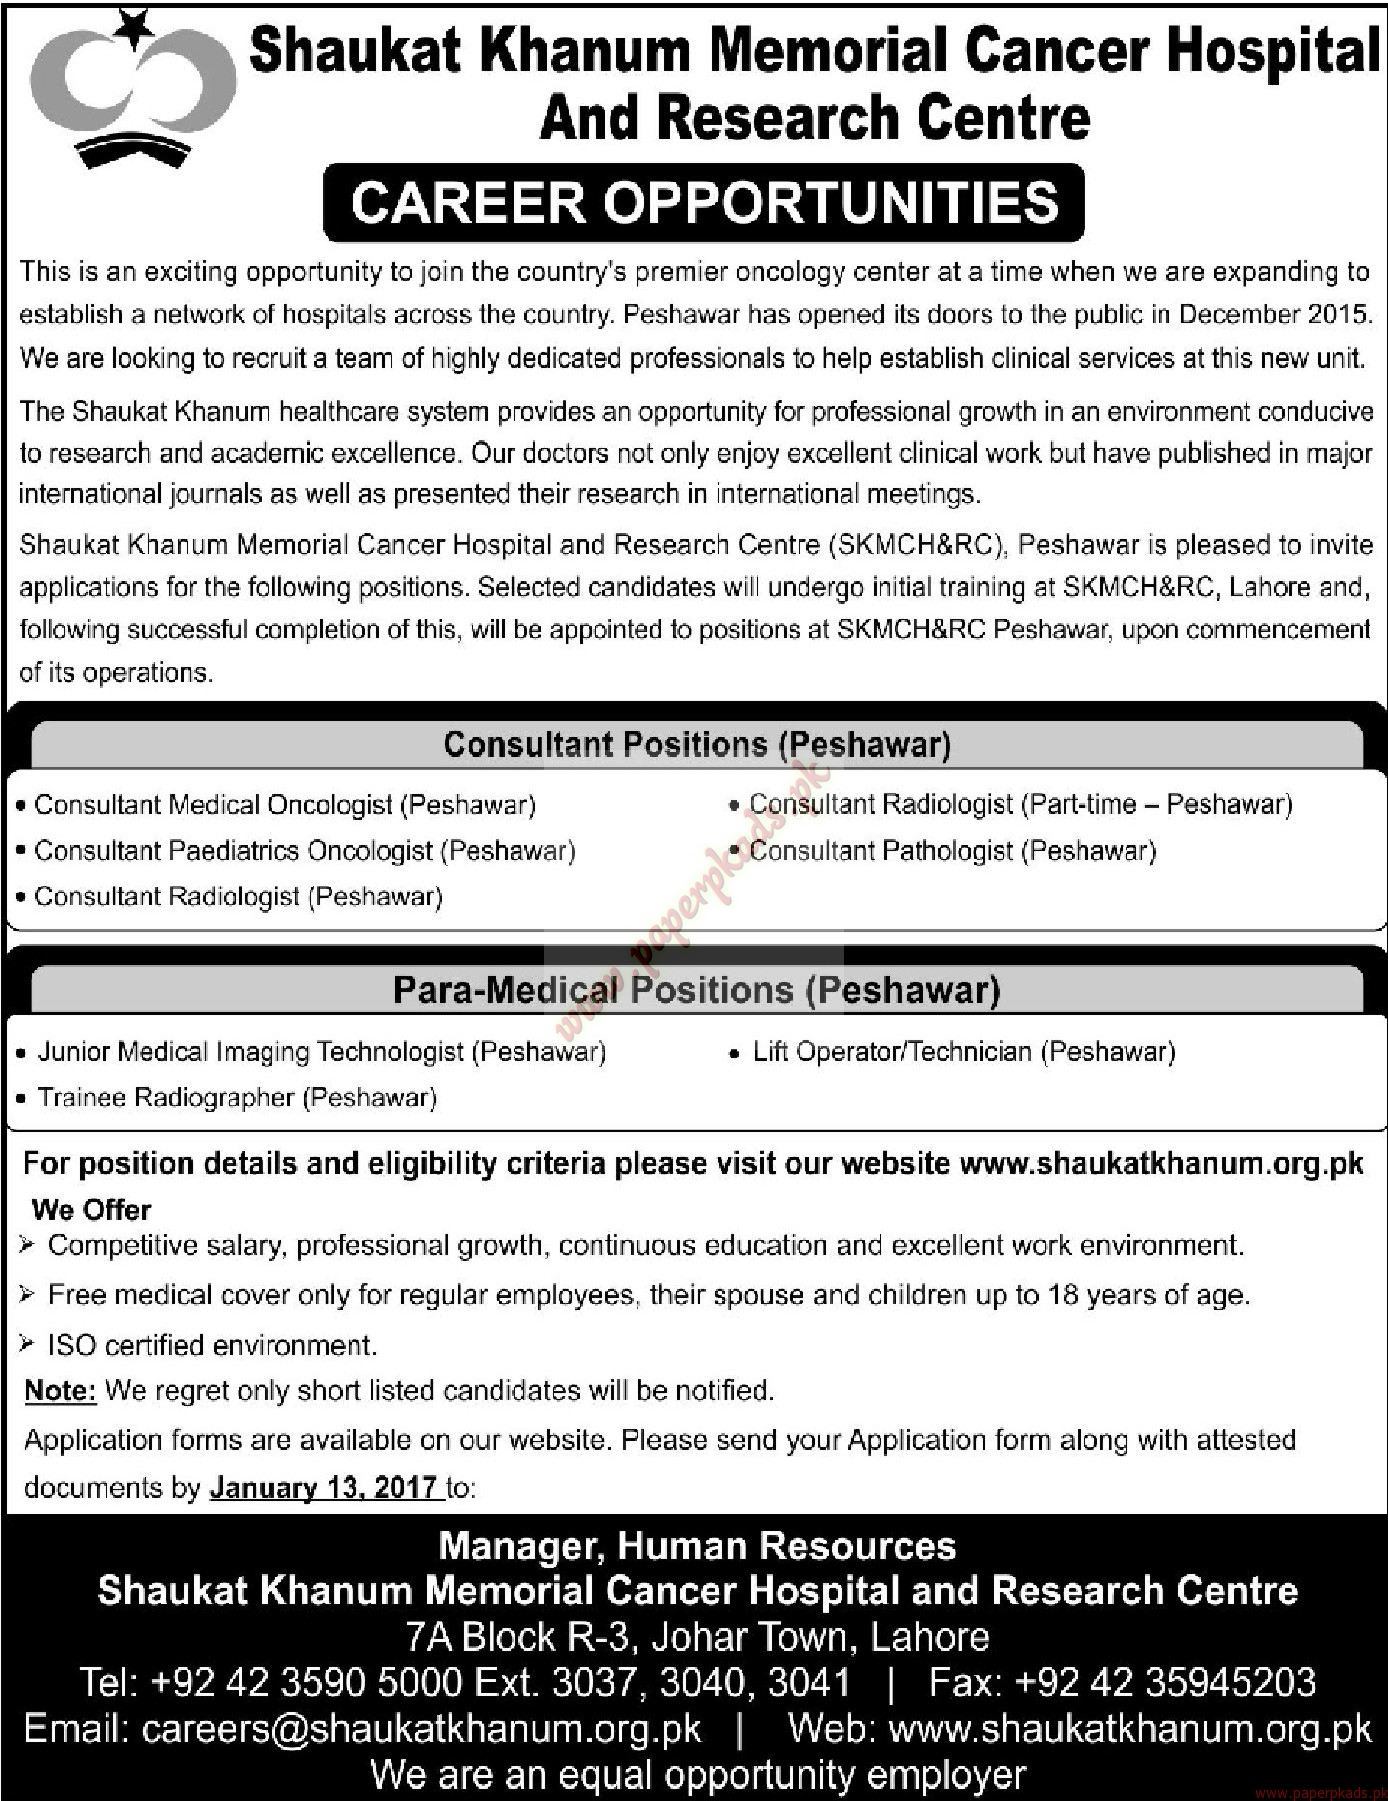 Shaukat Khanum Memorial Cancer Hospital and Research Centre Jobs - Mashriq Jobs ads 01 January 2017